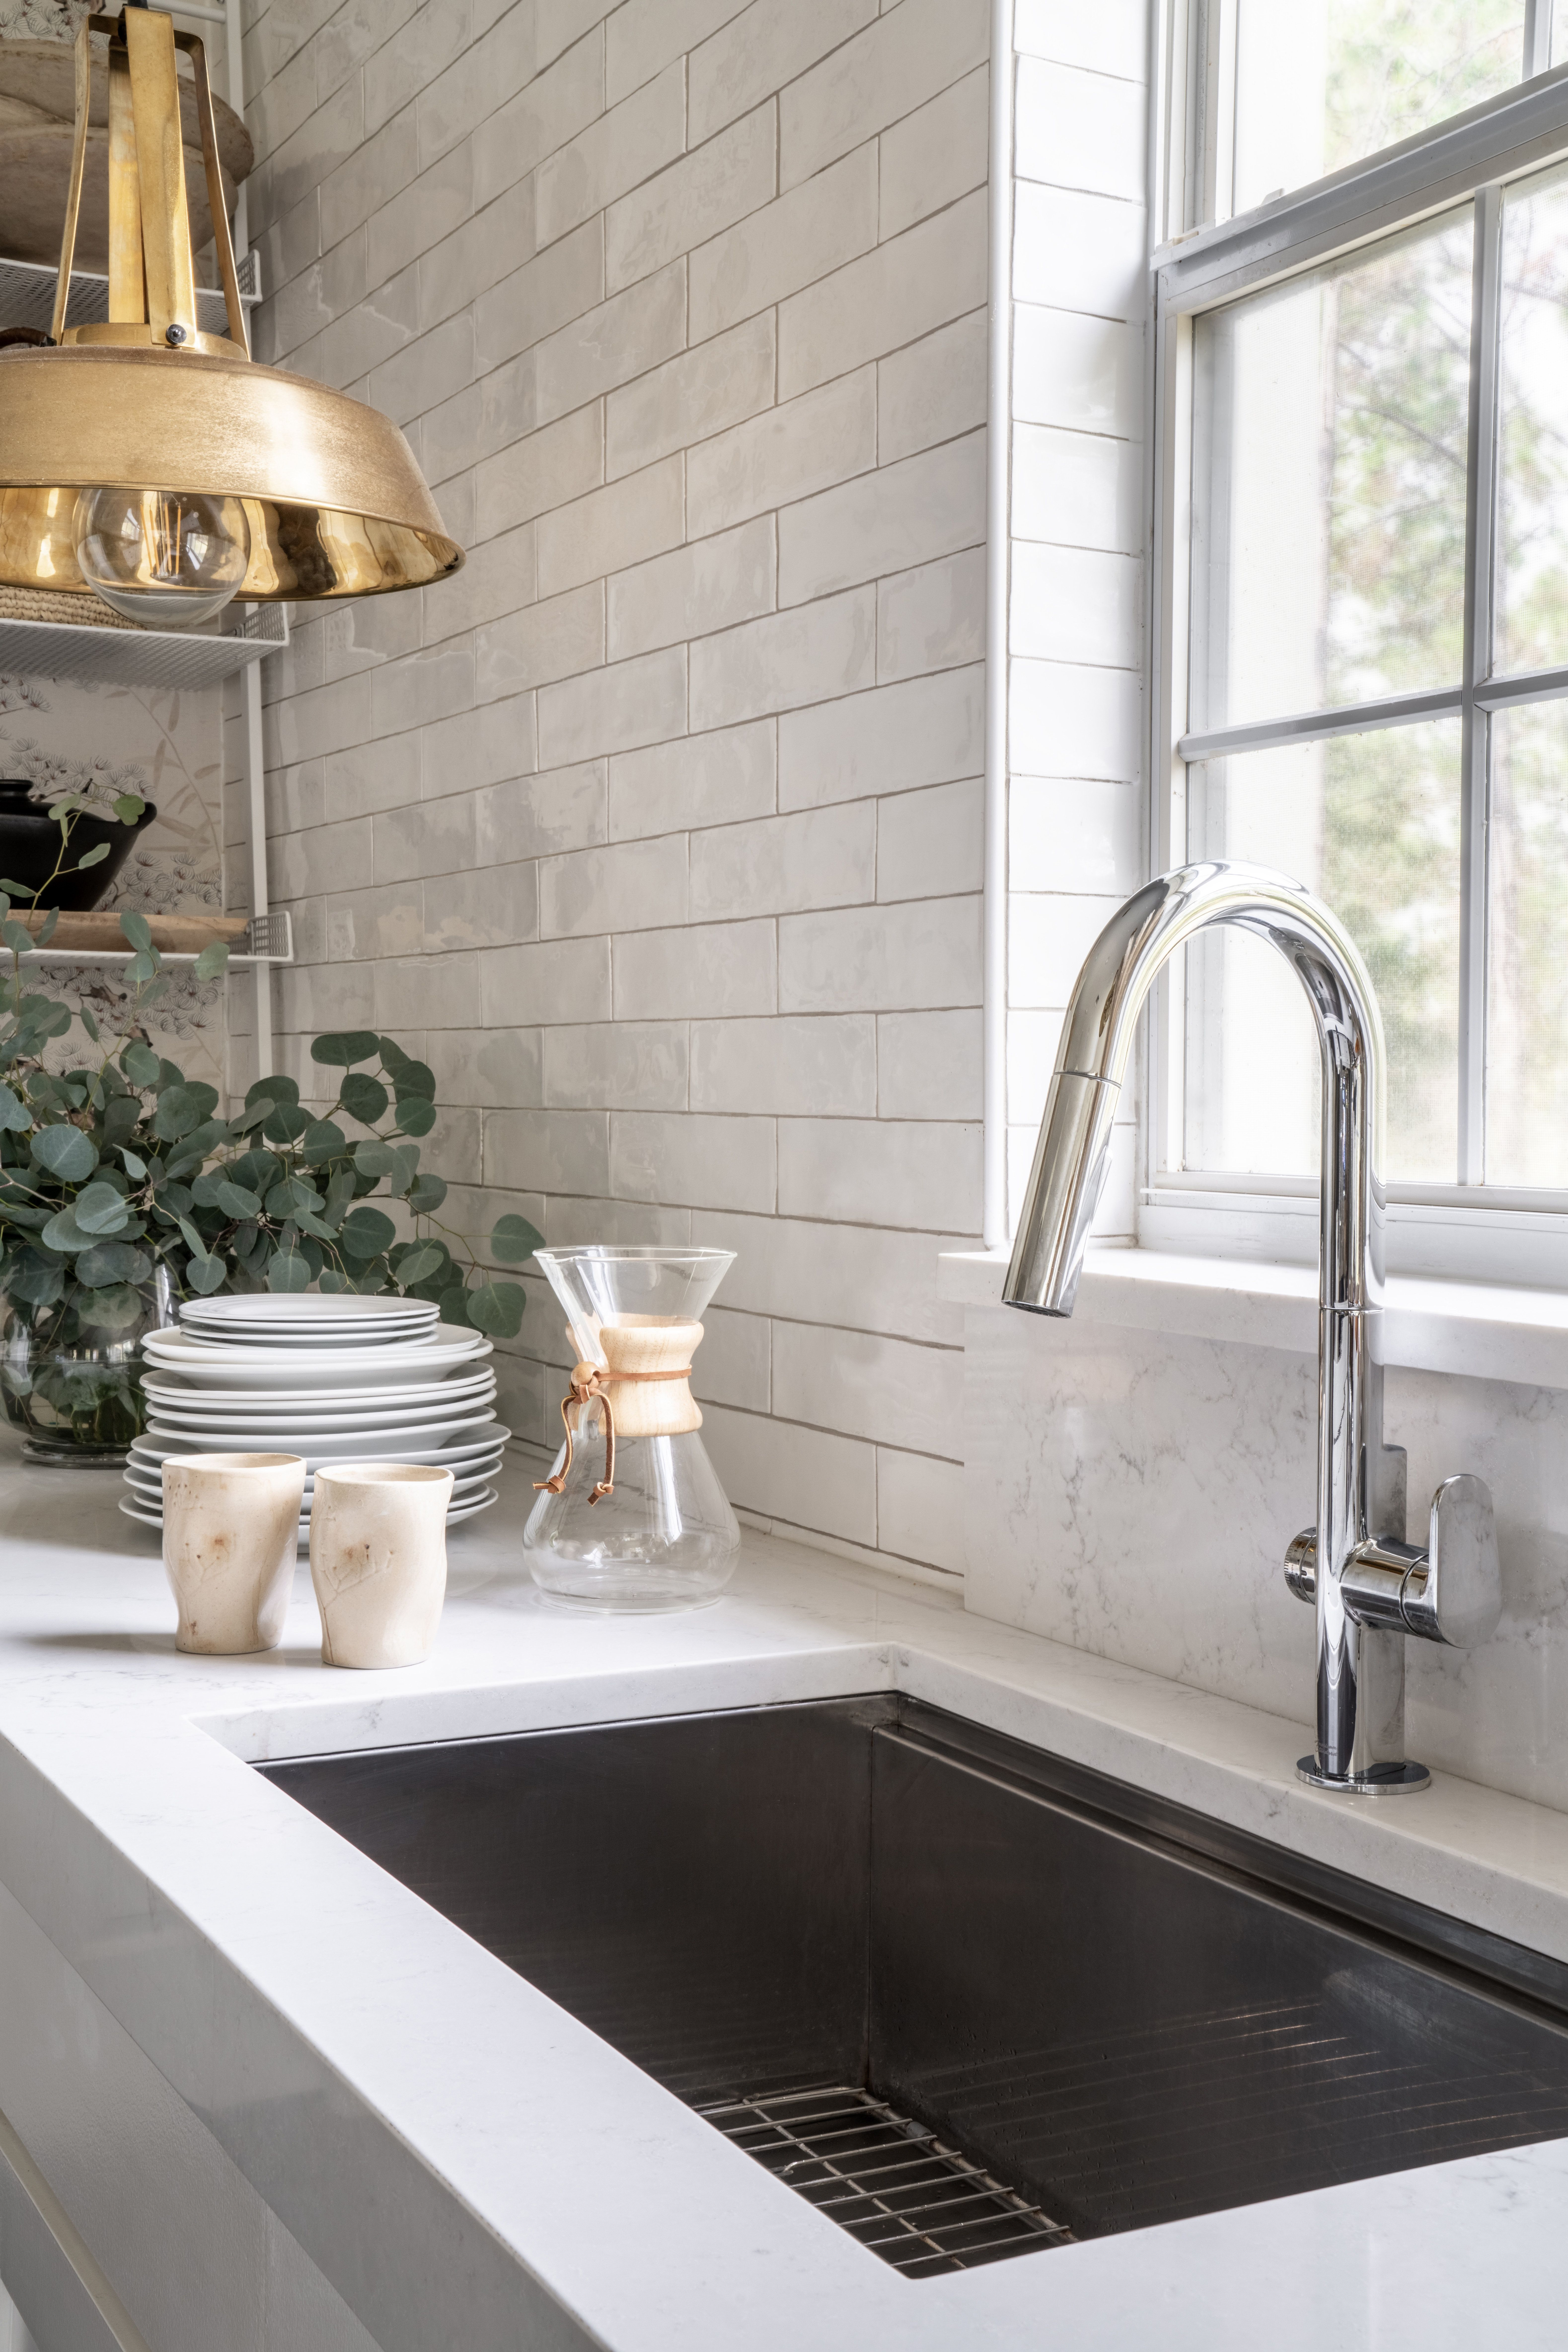 A Florida Designer Reinvents Her Kitchen By Removing The Upper Cabinets White Subway Tile Kitchen Kitchens Without Upper Cabinets Contemporary Kitchen